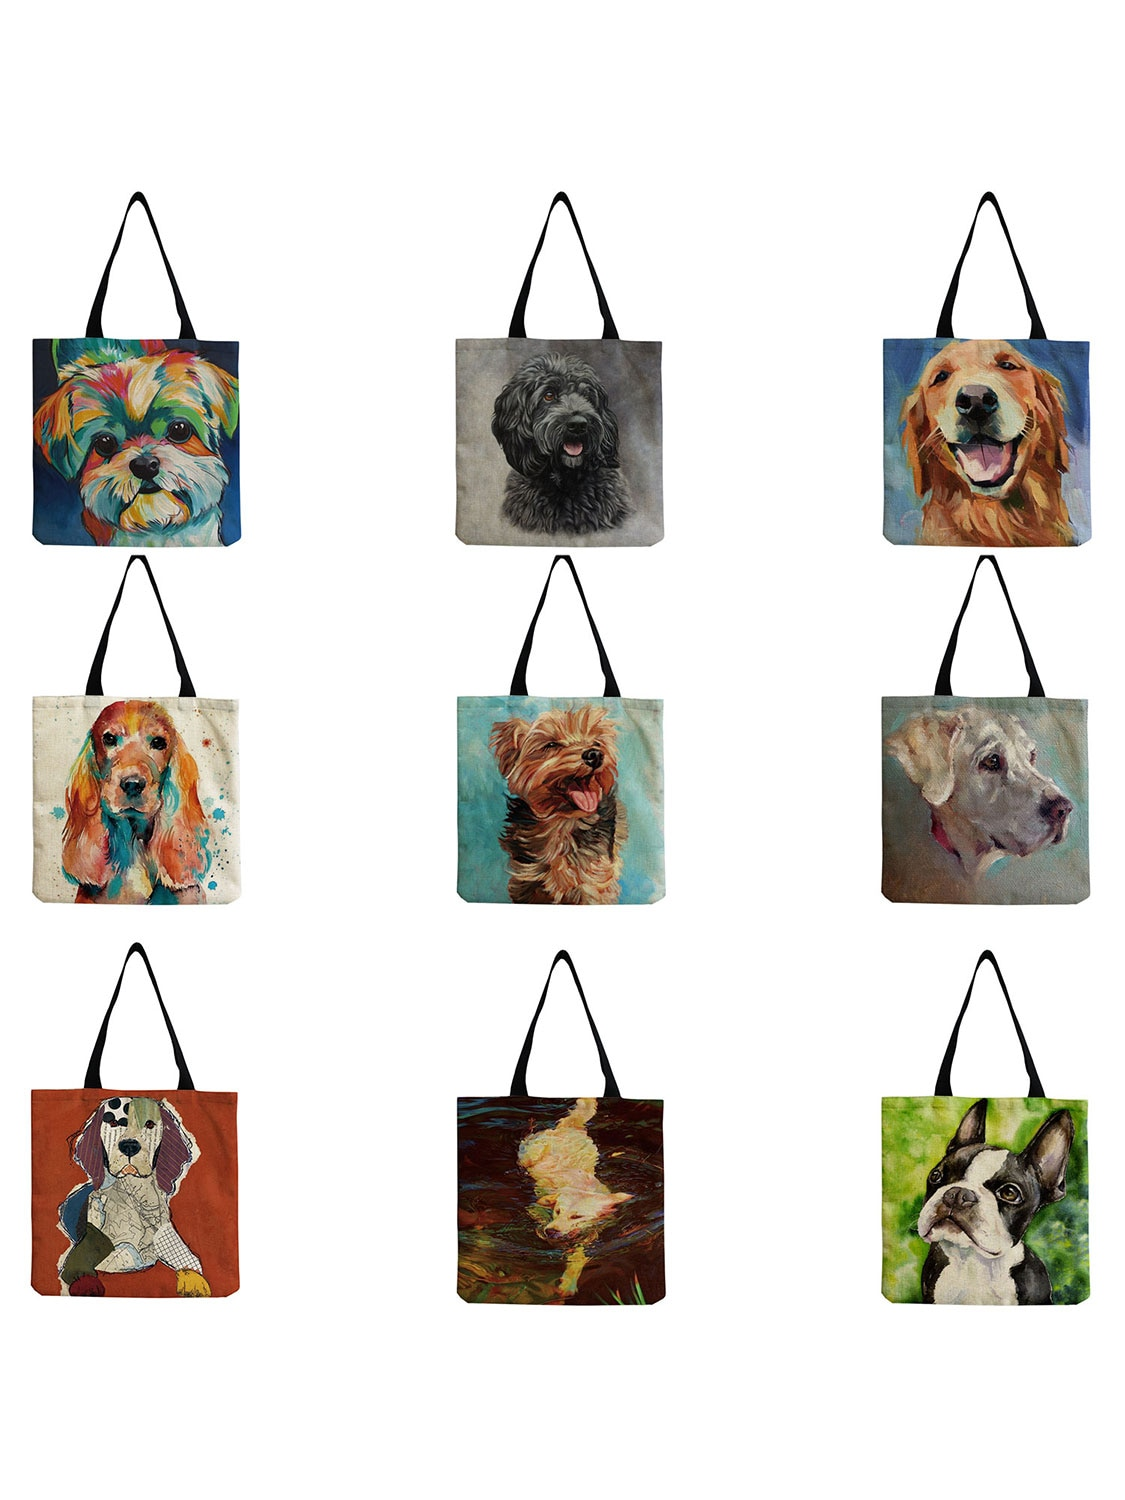 Exclusive Oil Painting Dog Print Large Capacity Shopping Bags for Groceries Papillon Pug Retriever P